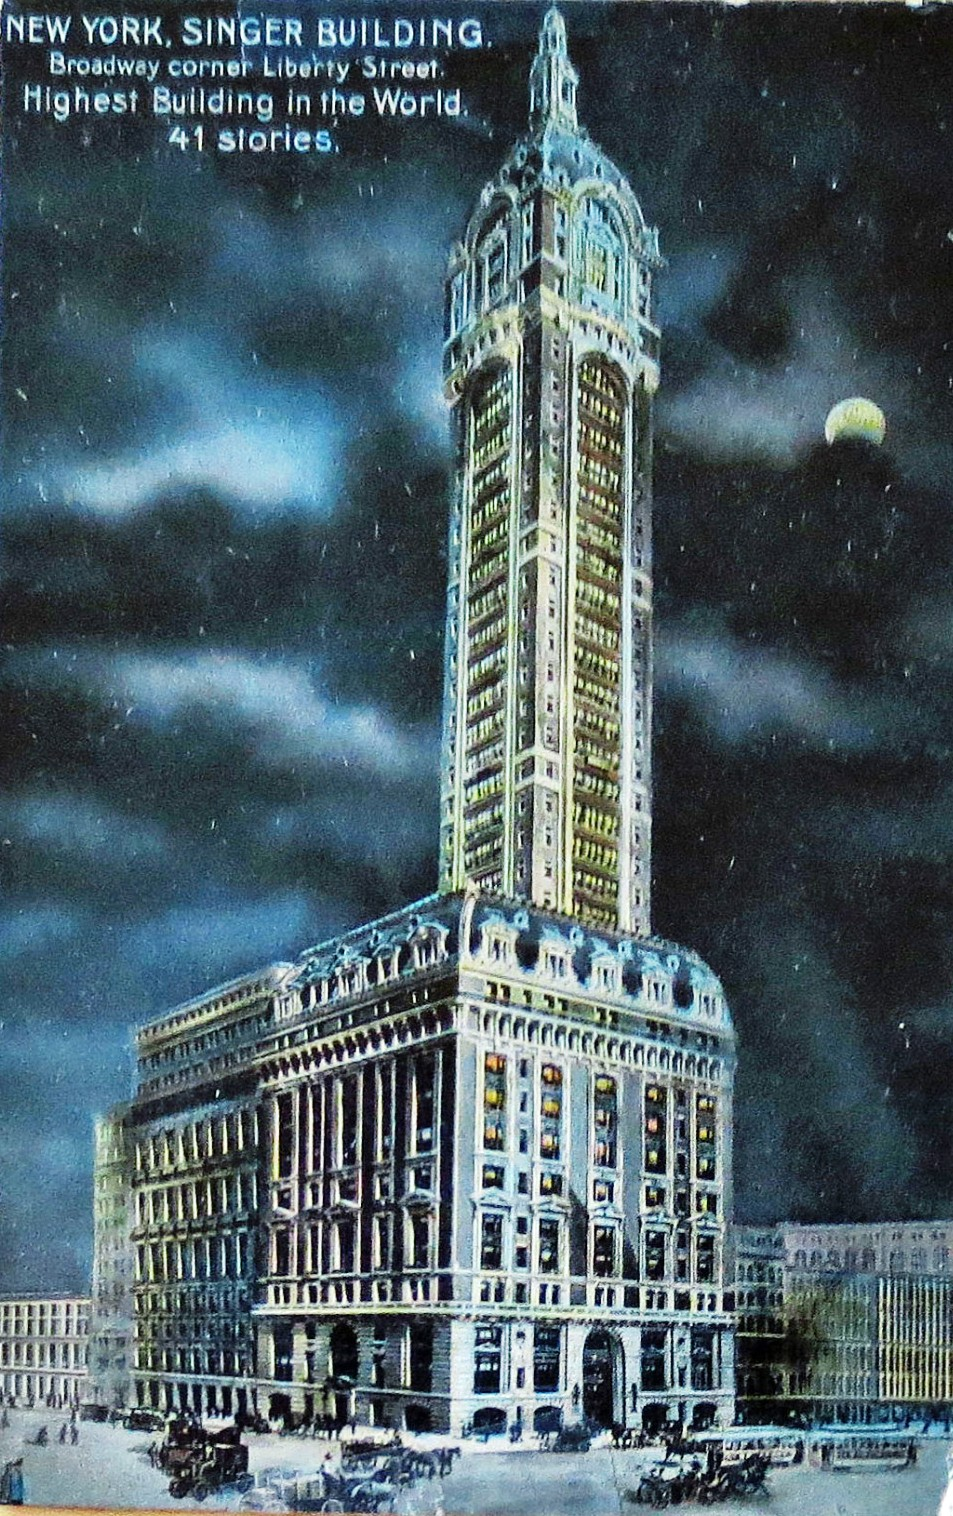 The Singer Building was the first in New York to be dramatically lit at night.